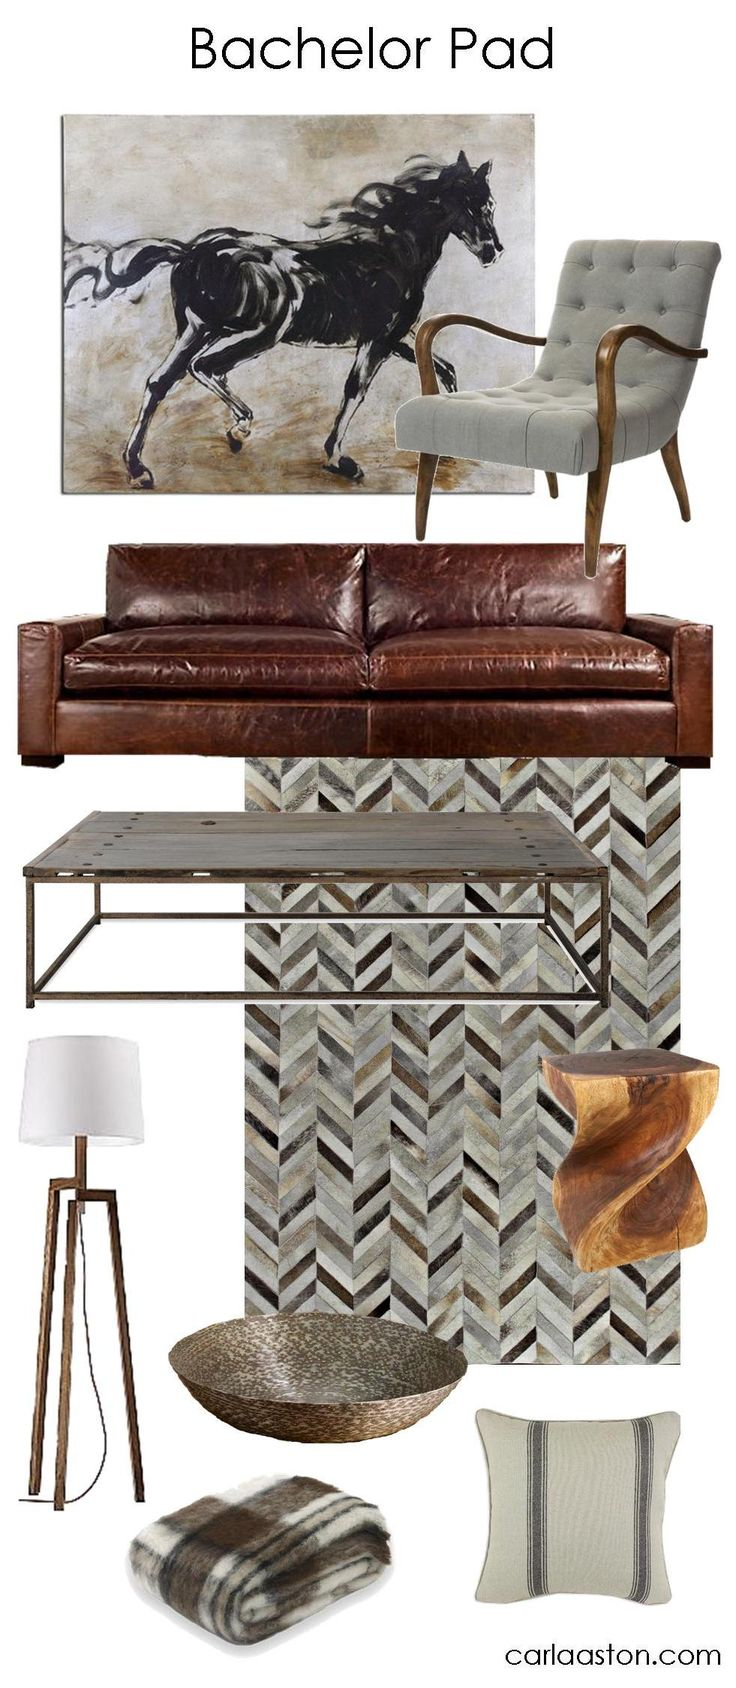 Bachelor Pad Wall Decor best 25+ bachelor pad decor ideas on pinterest | bachelor decor